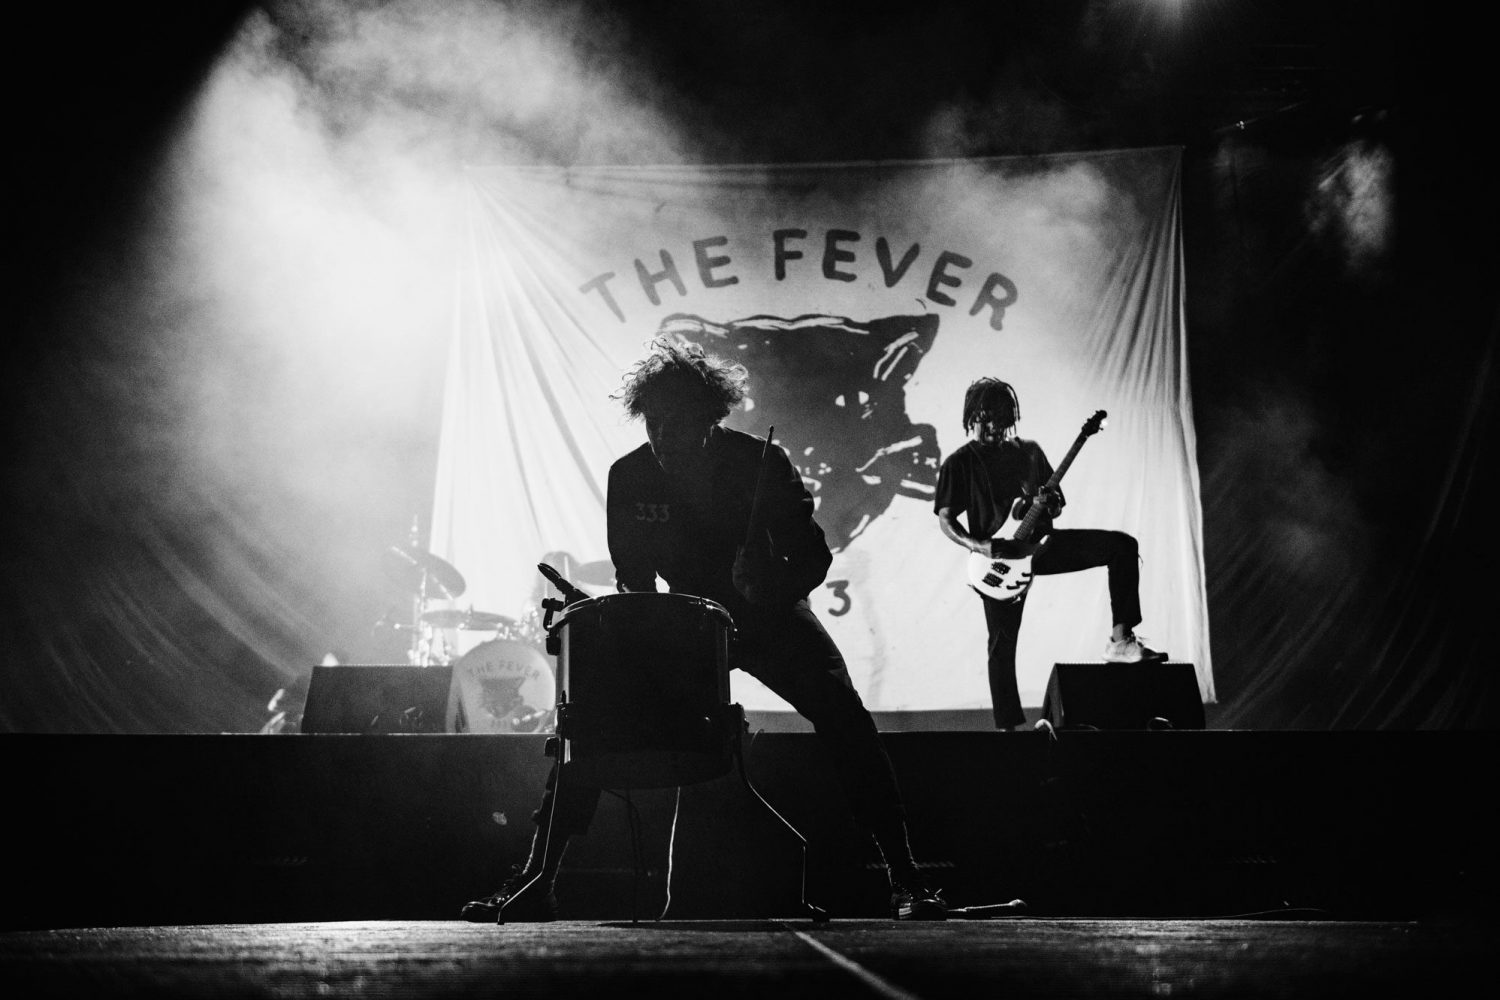 The new issue of Upset, featuring Fever 333, is out now